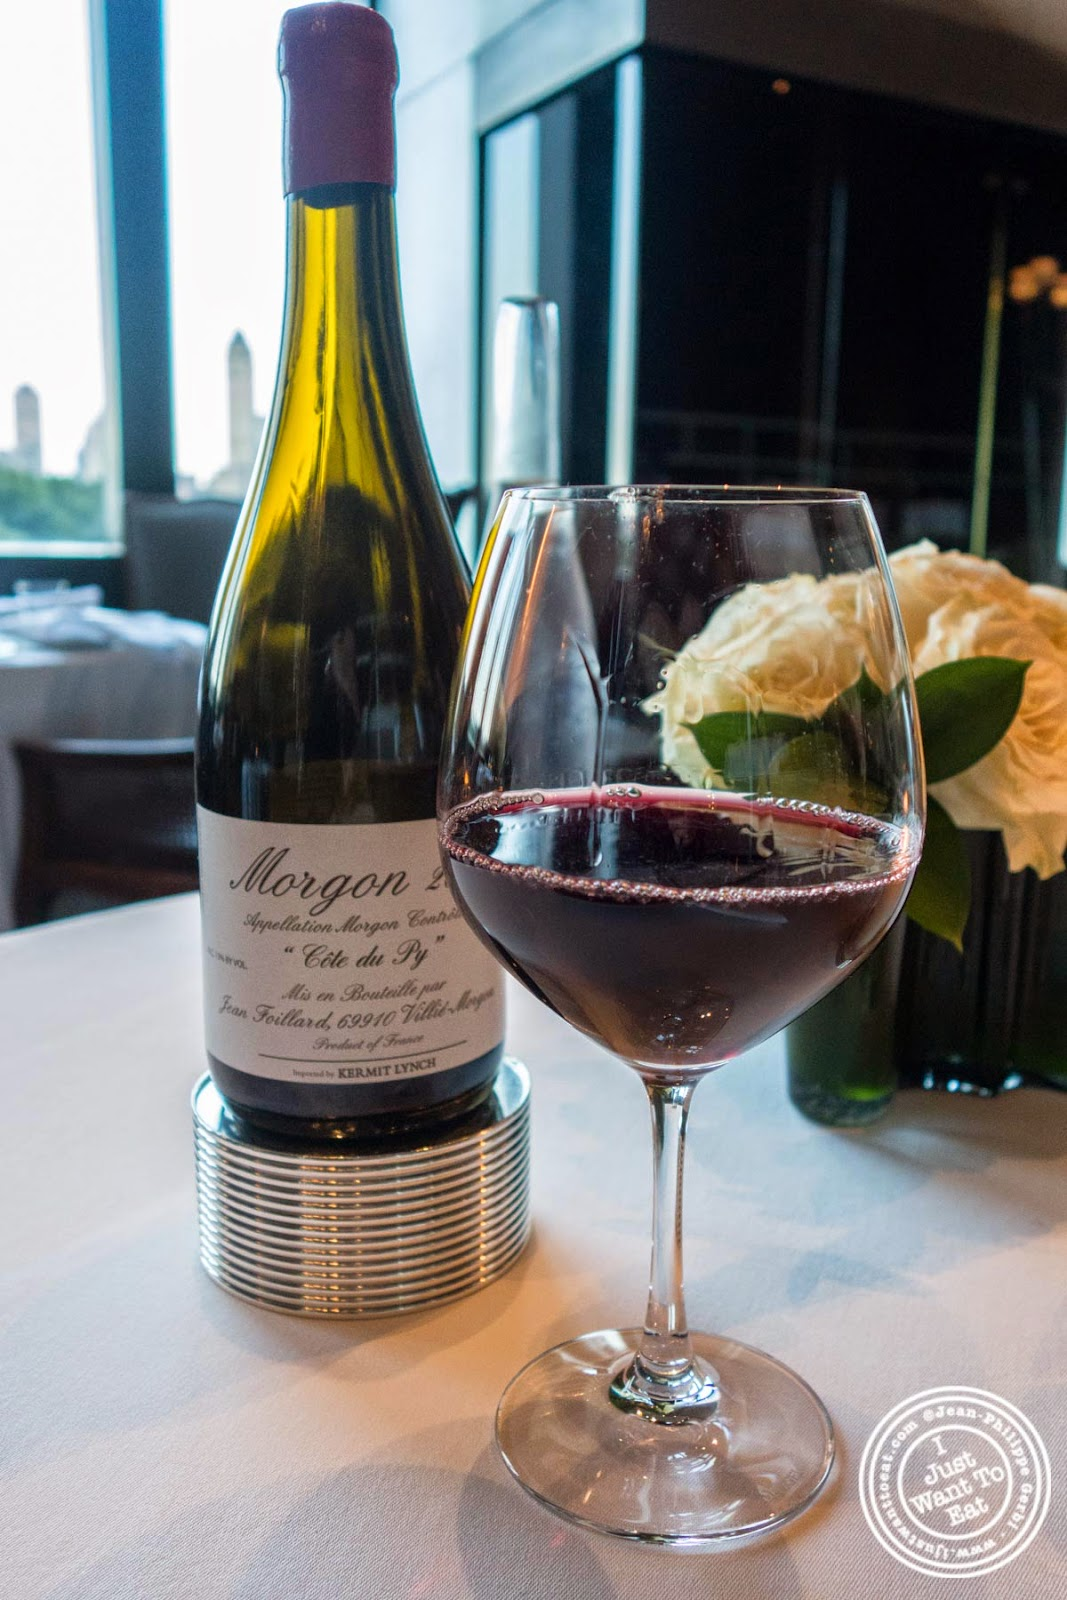 image of Jean Foillard Morgon Côte du Py, 2012 at Per Se in New York, NY